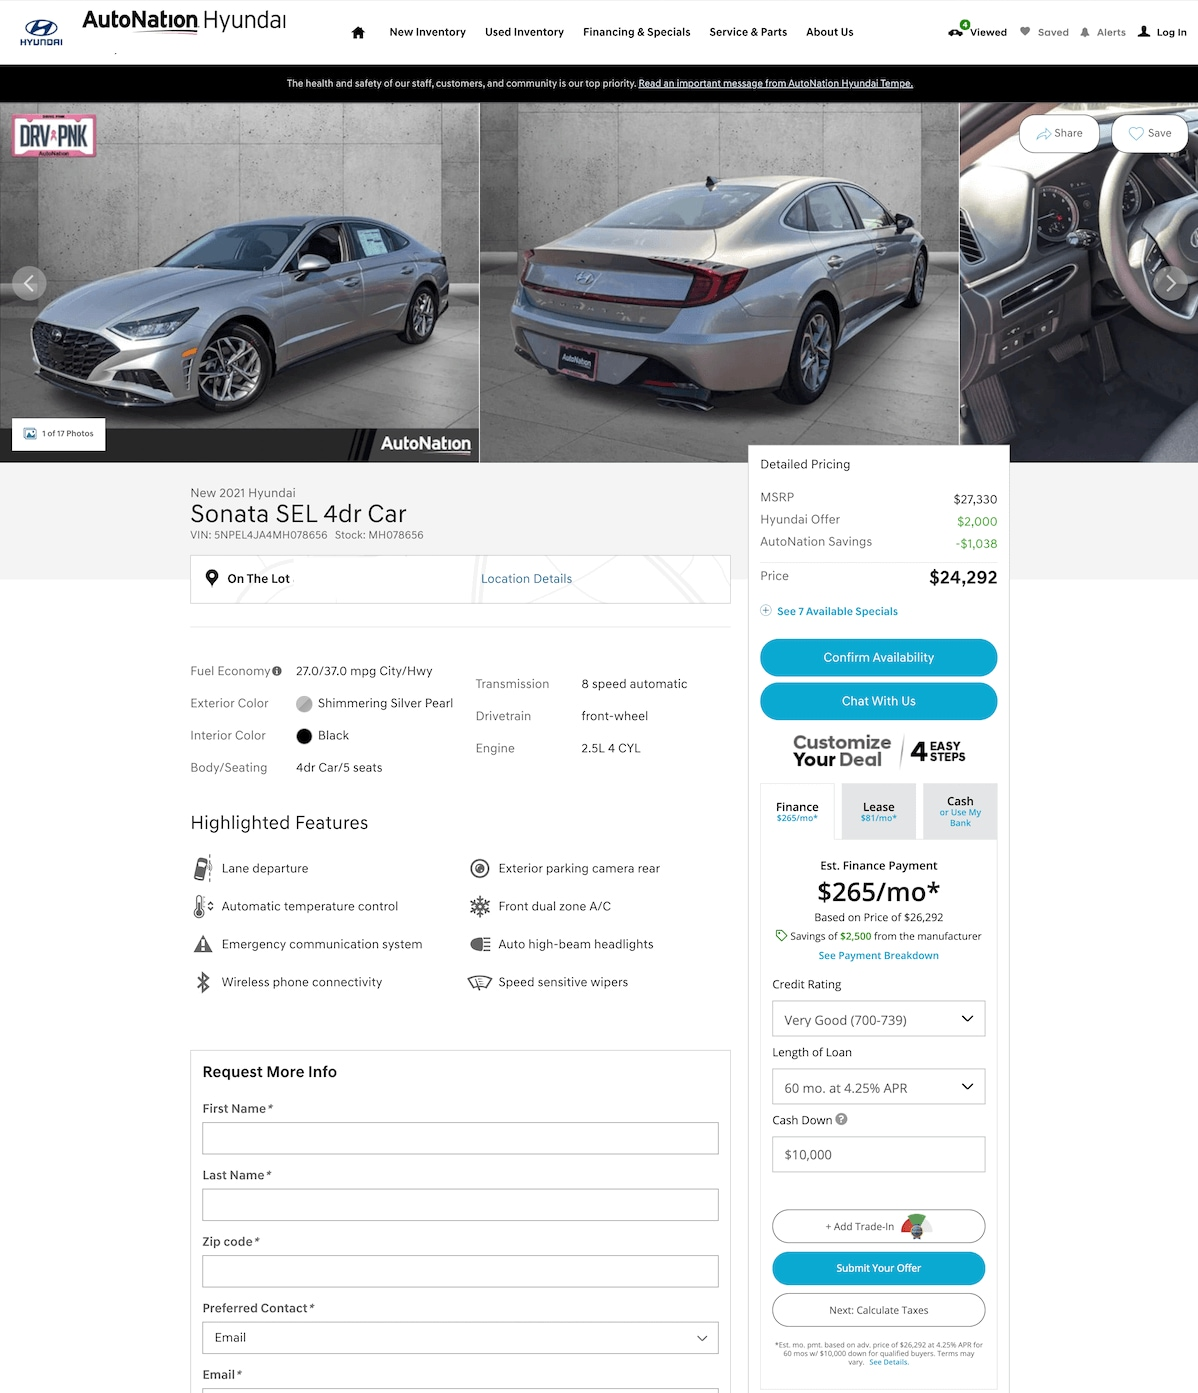 AutoNation Hyundai O'Hare vehicle details page